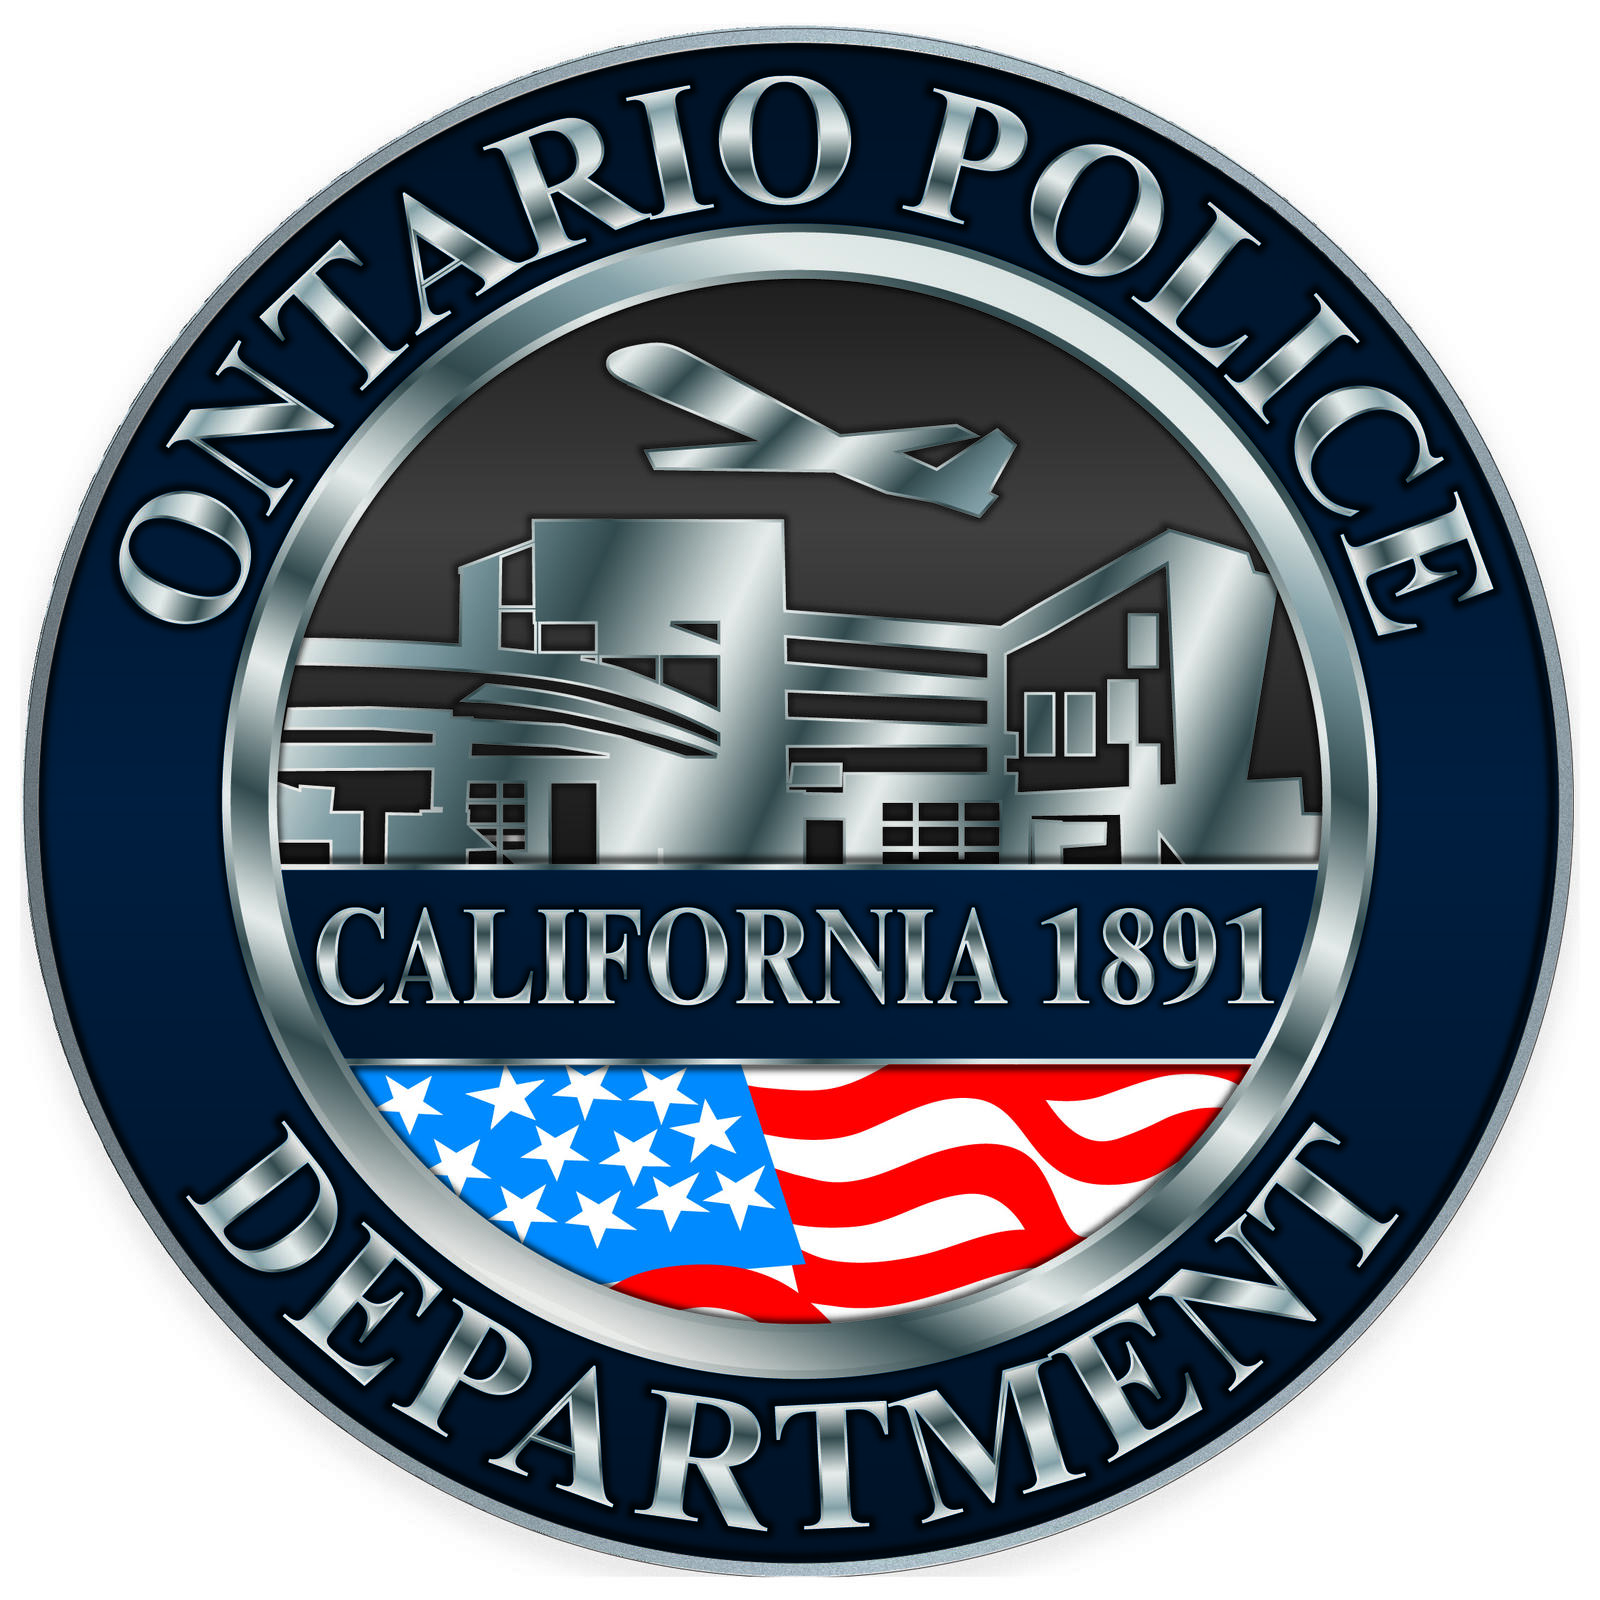 Ontario Police Department - 213 Crime and Safety updates